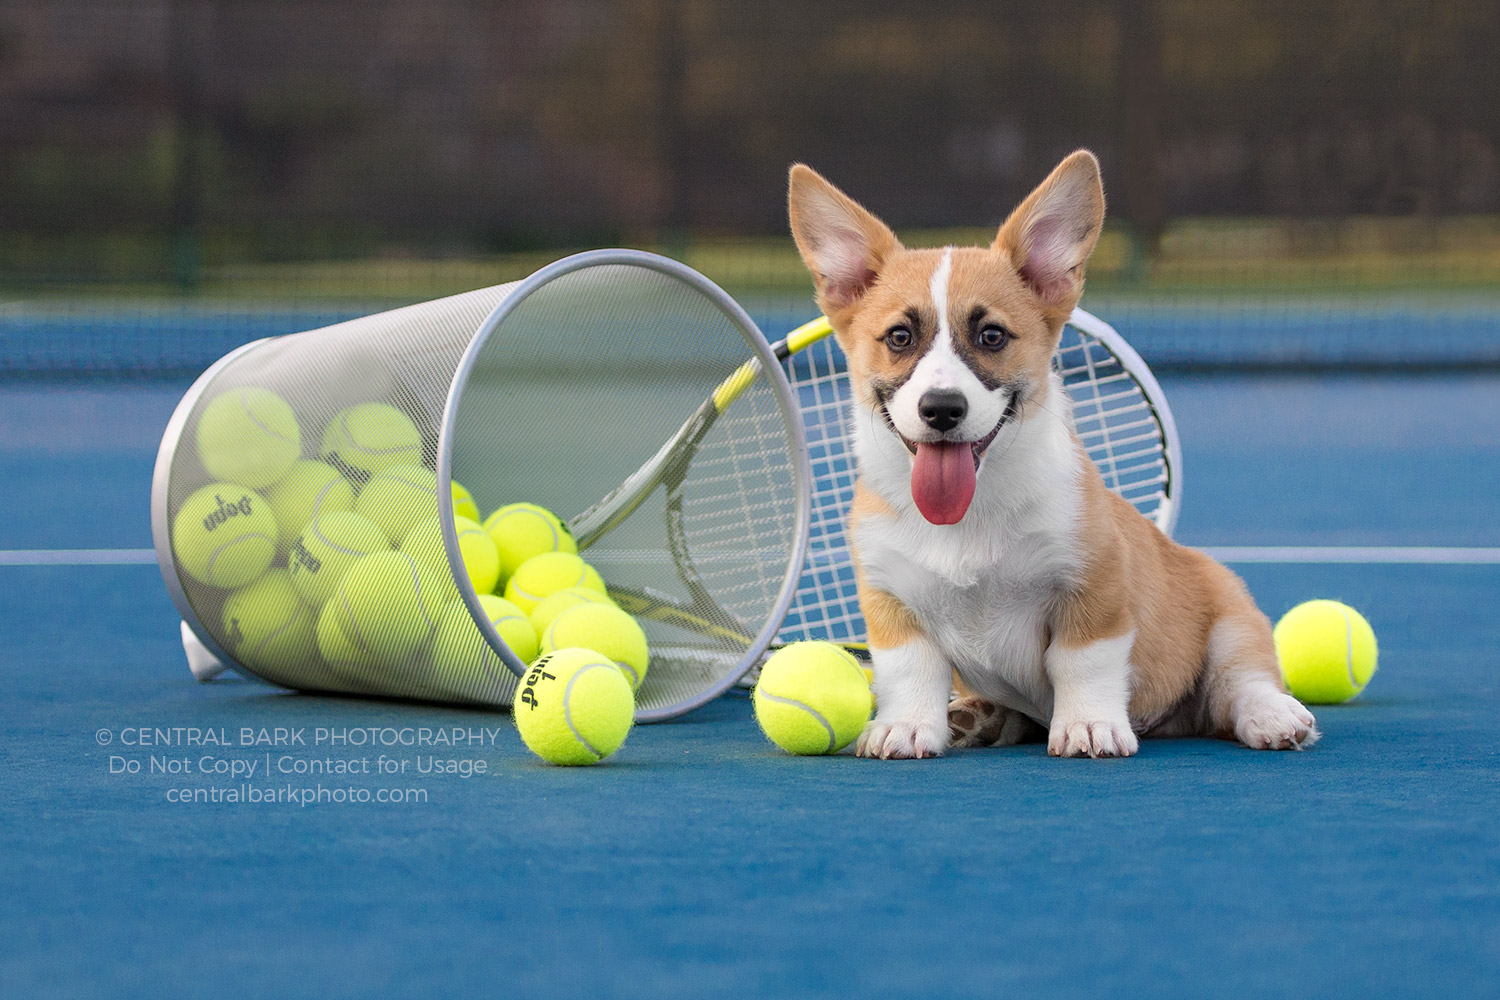 corgi dog on frisco tennis court with balls and racquet